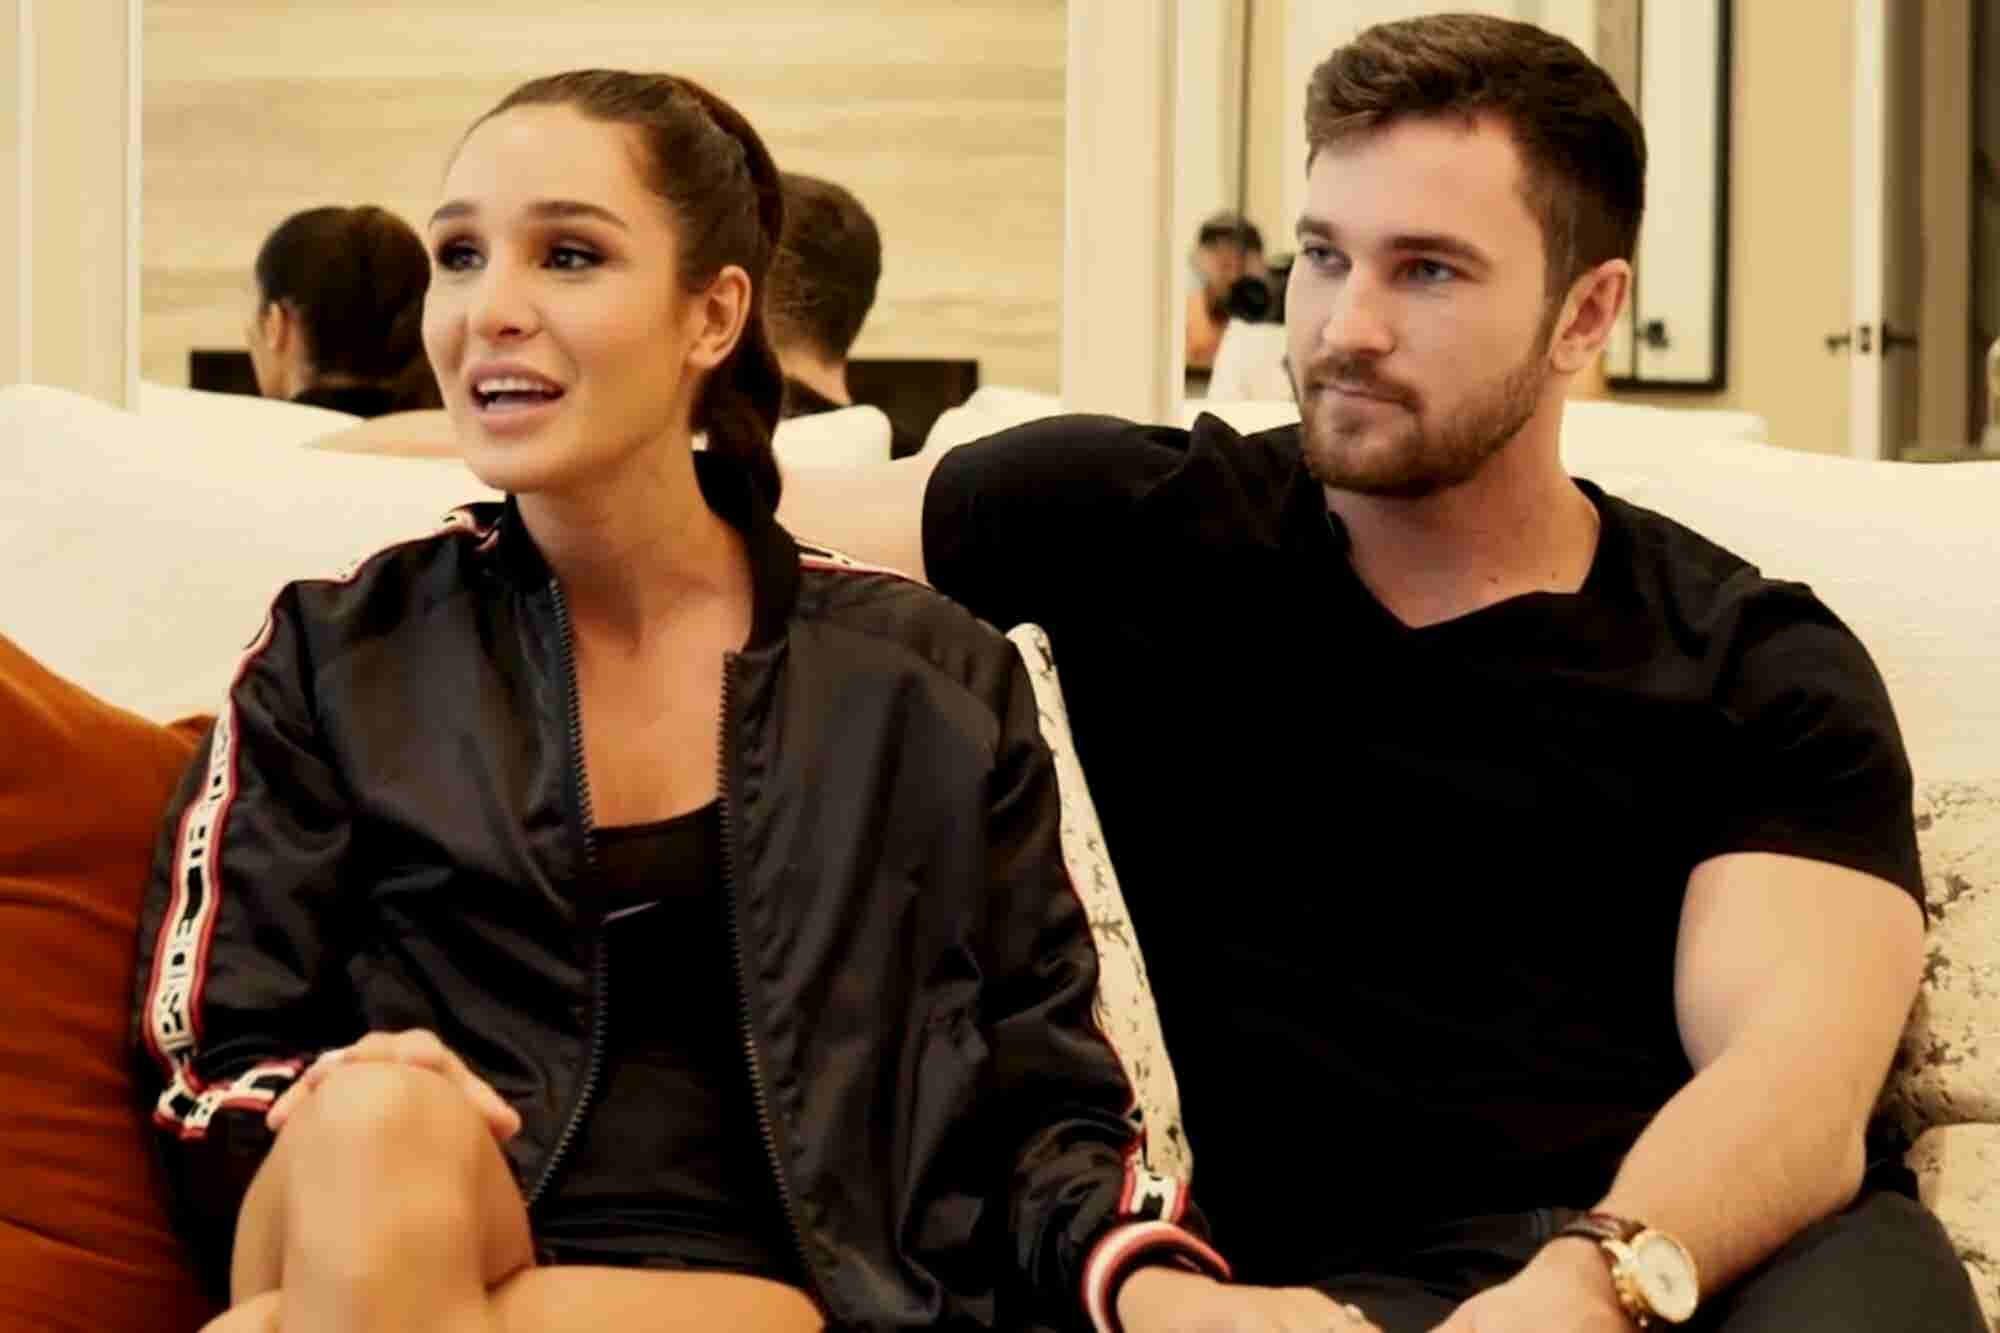 How the Sweat App's Kayla Itsines and Tobi Pearce Built a Fitness Empire